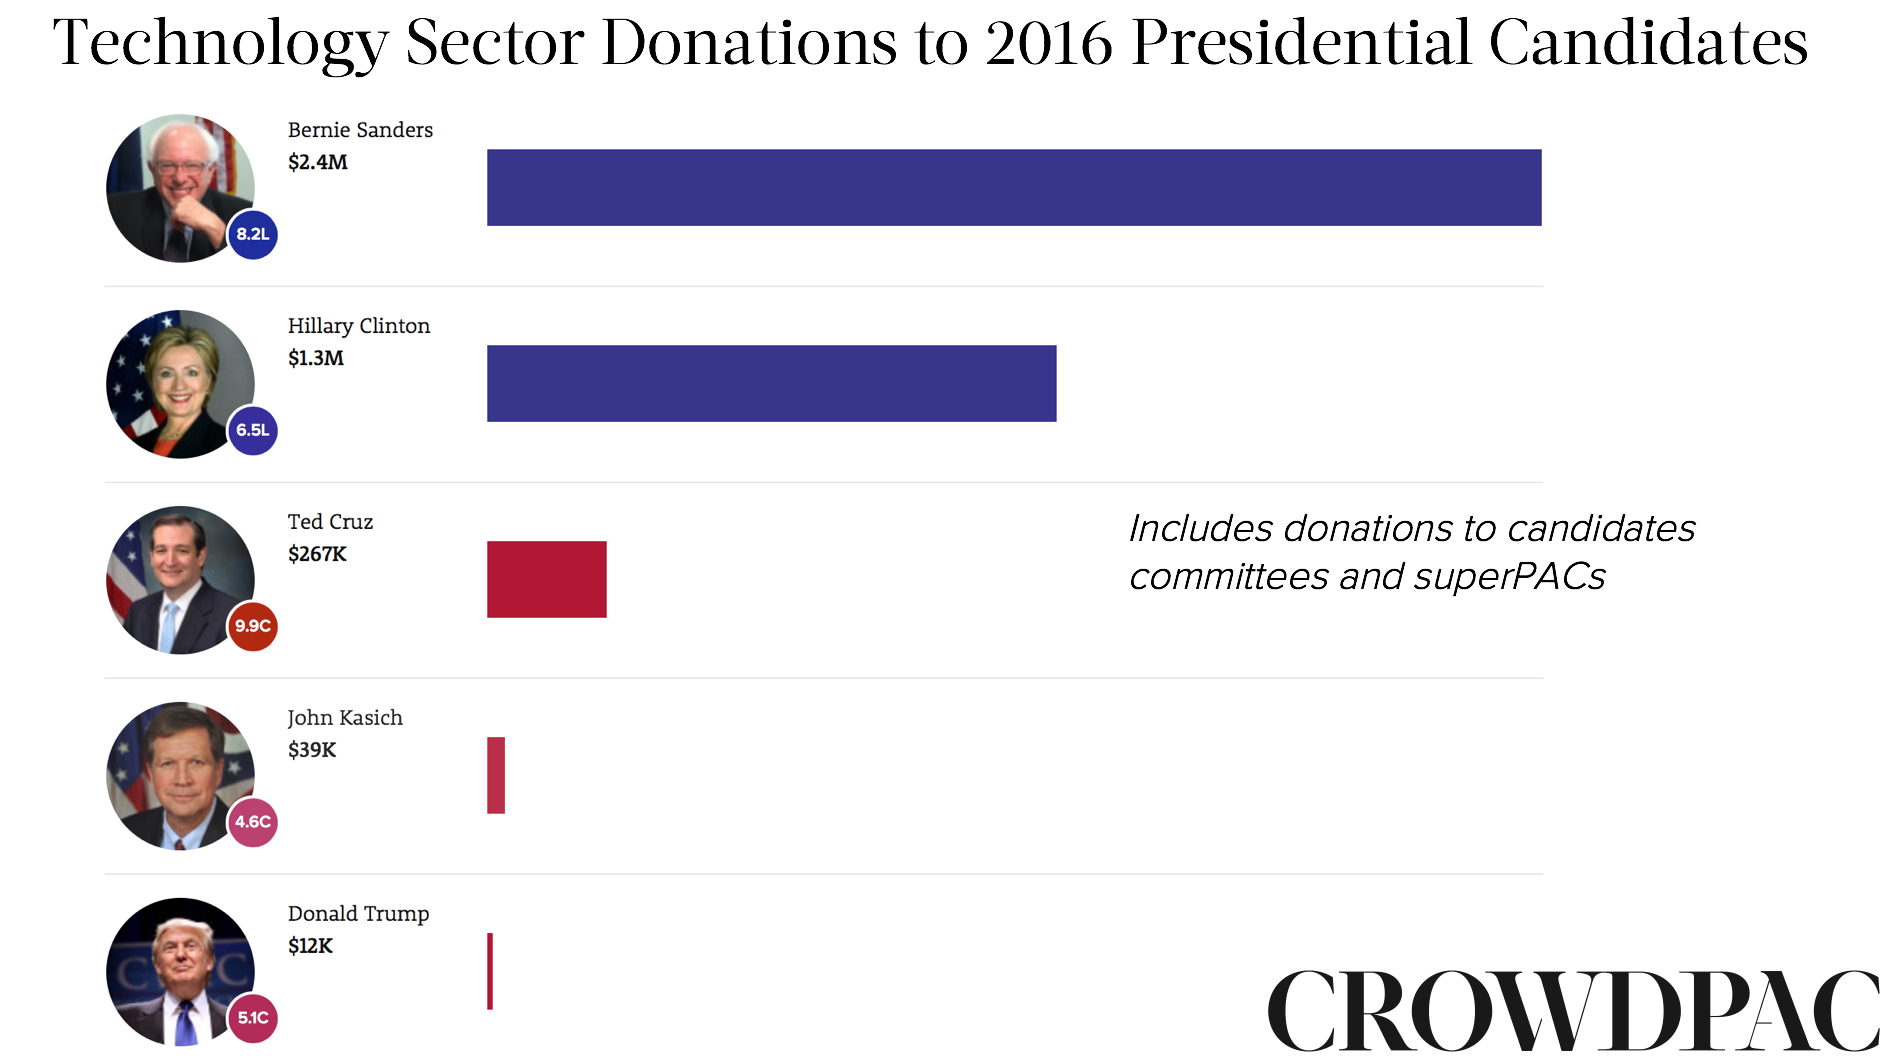 Tech Sector Donations